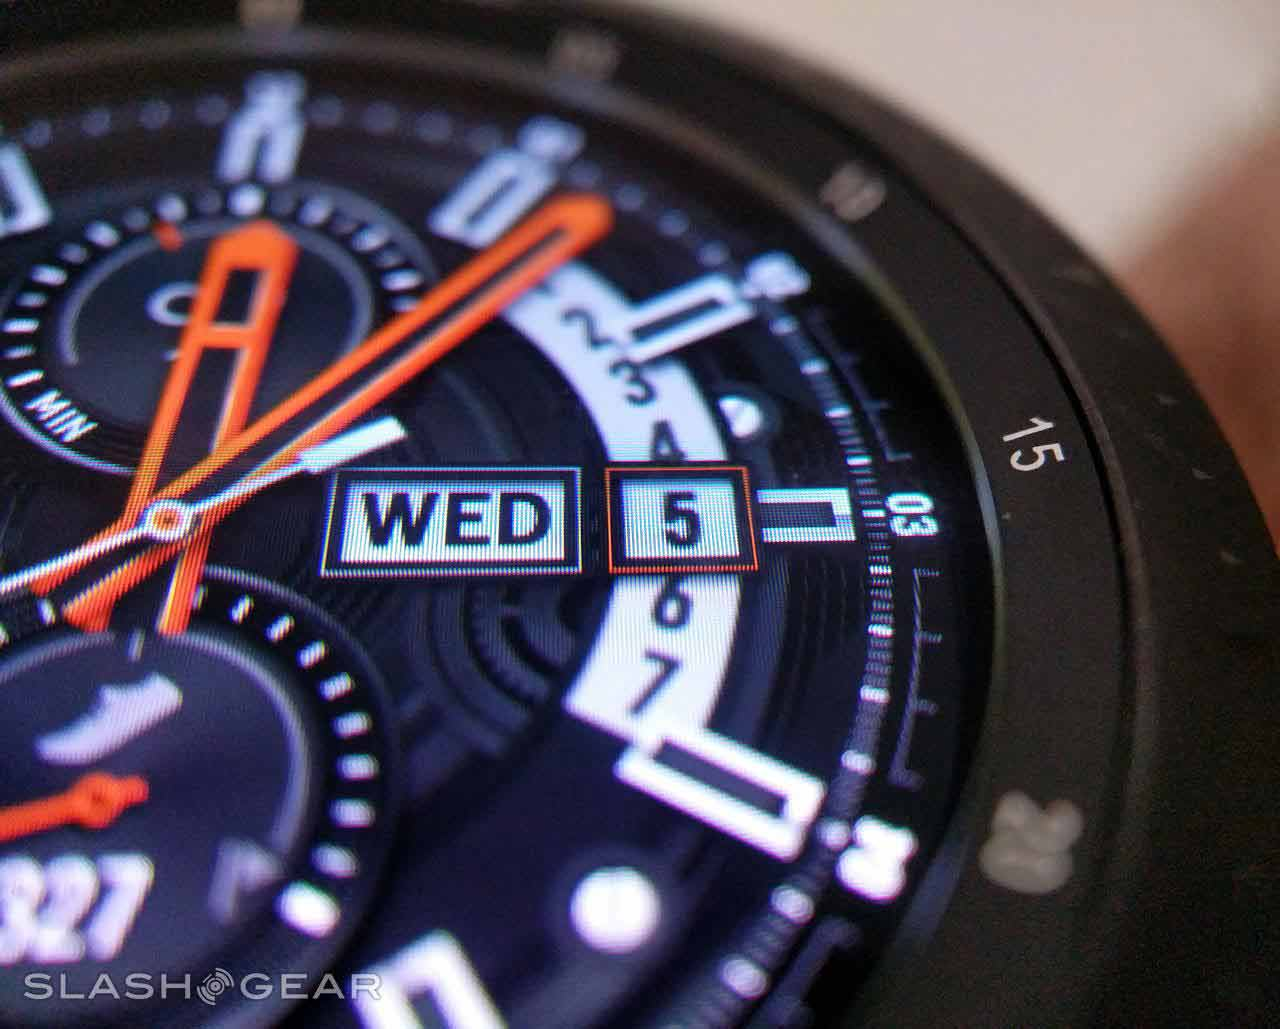 Swatch VS Samsung smartwatch lawsuit, claims, and 3rd-party